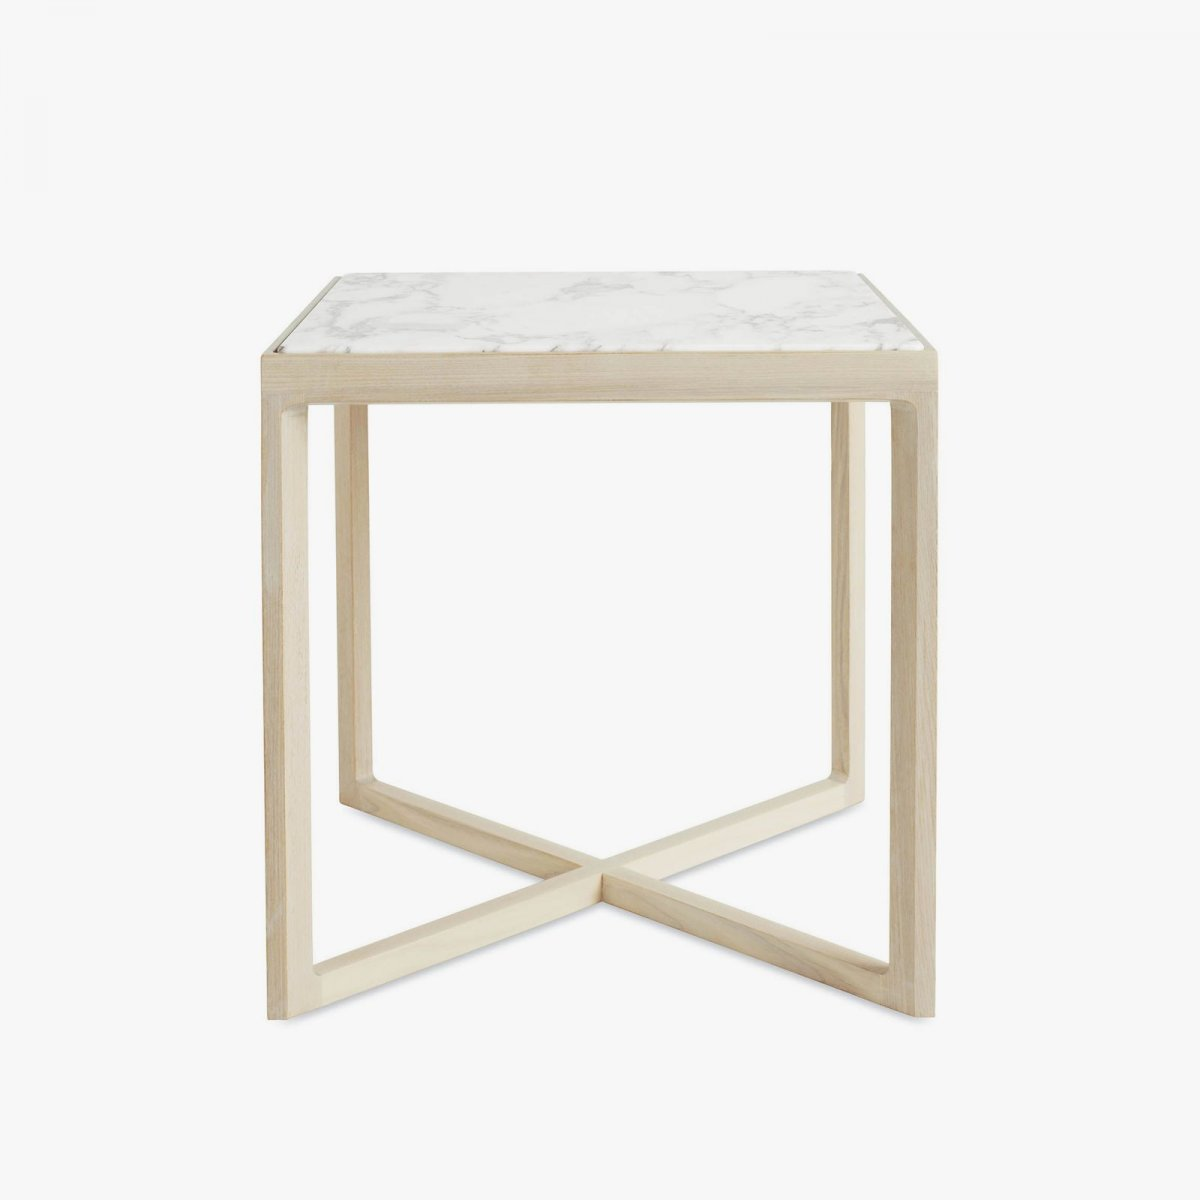 Krusin Side Table, ash + Arabescato marble.